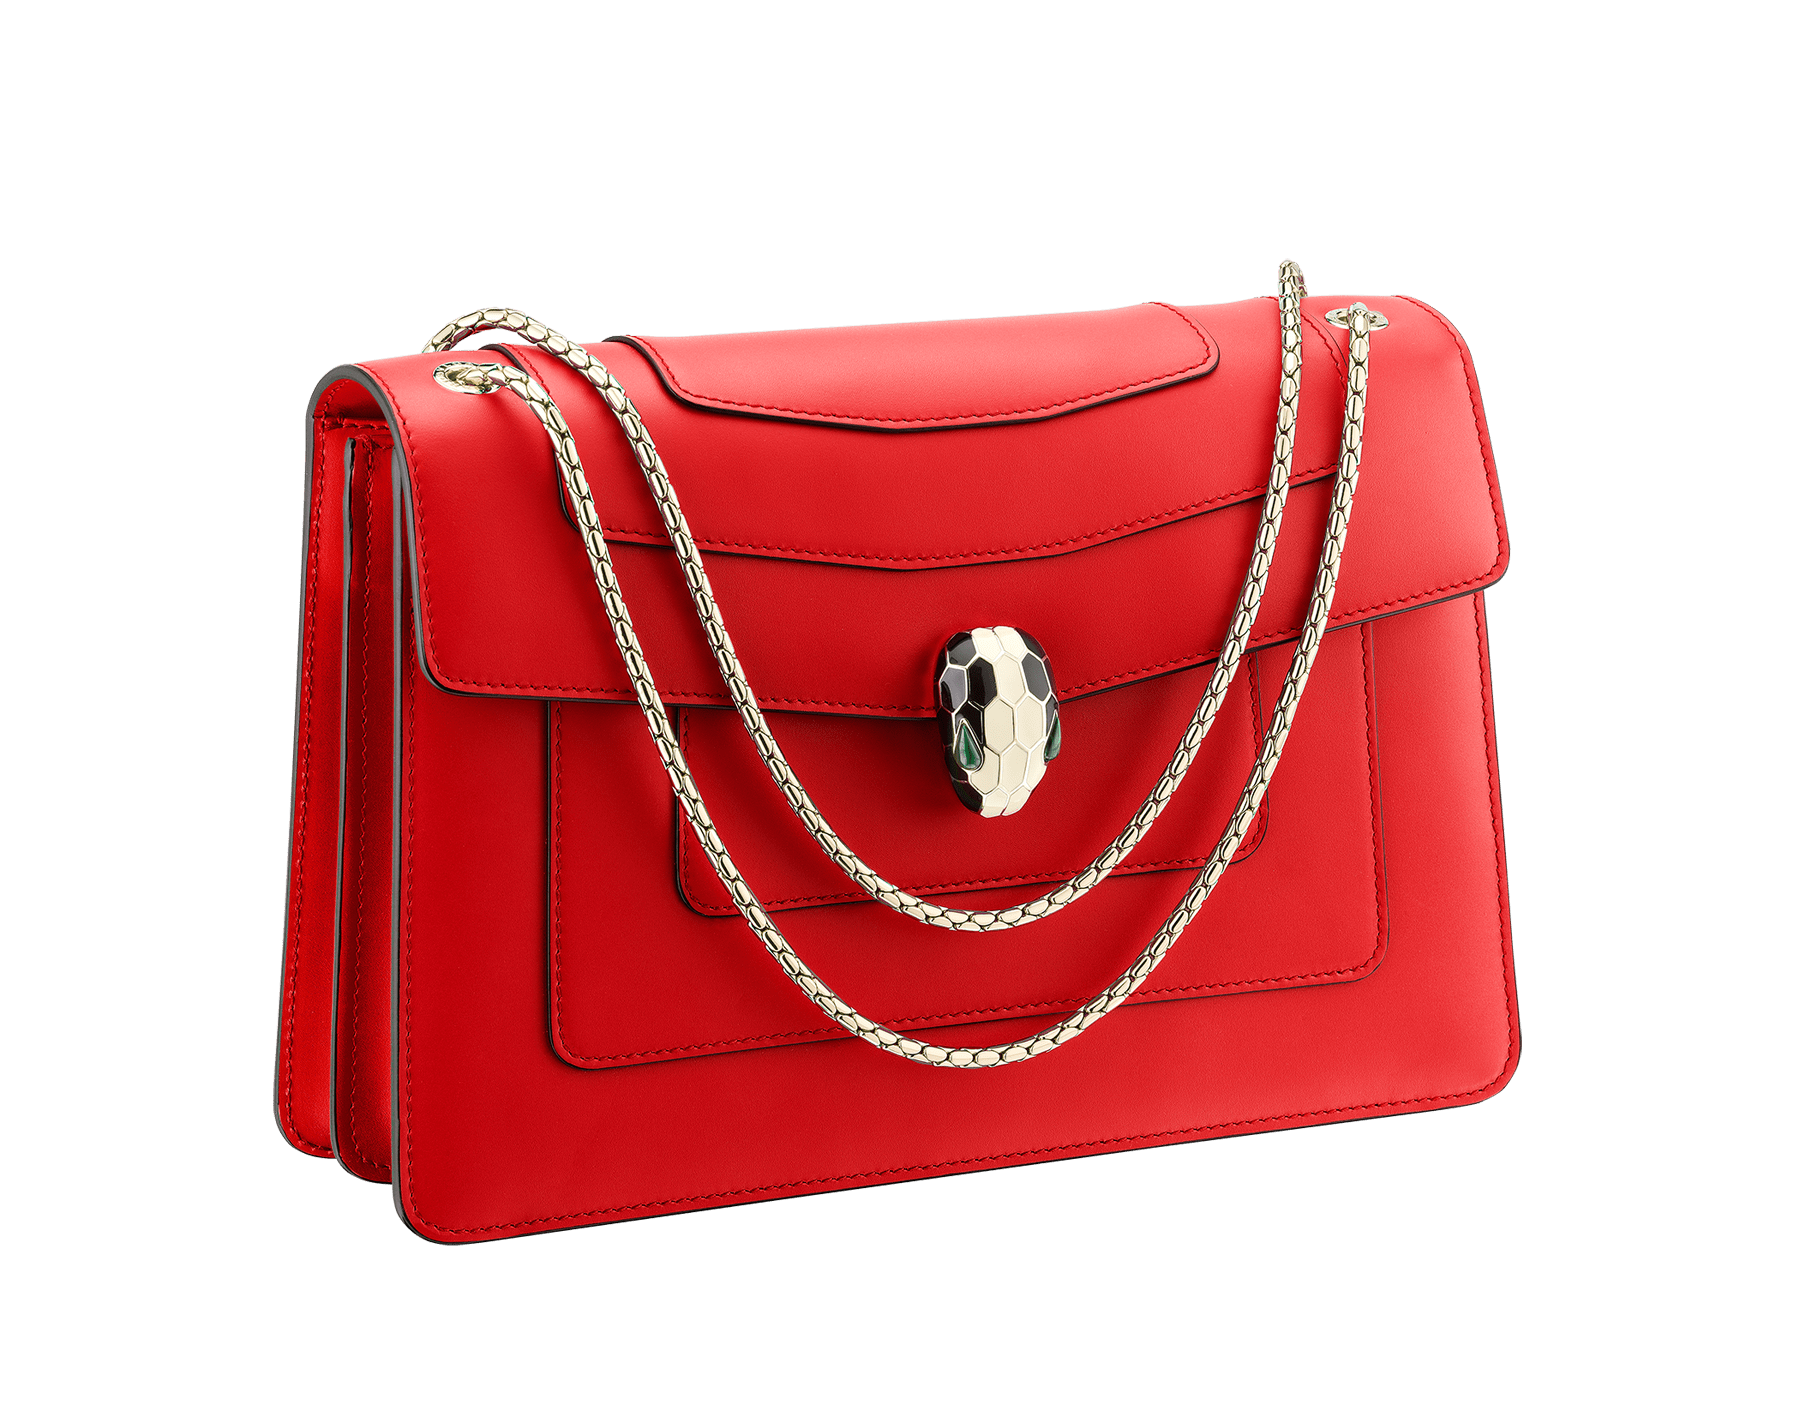 """Serpenti Forever "" shoulder bag in carmine jasper calf leather. Iconic snakehead closure in light gold plated brass enriched with black and white enamel and green malachite eyes 287033 image 2"